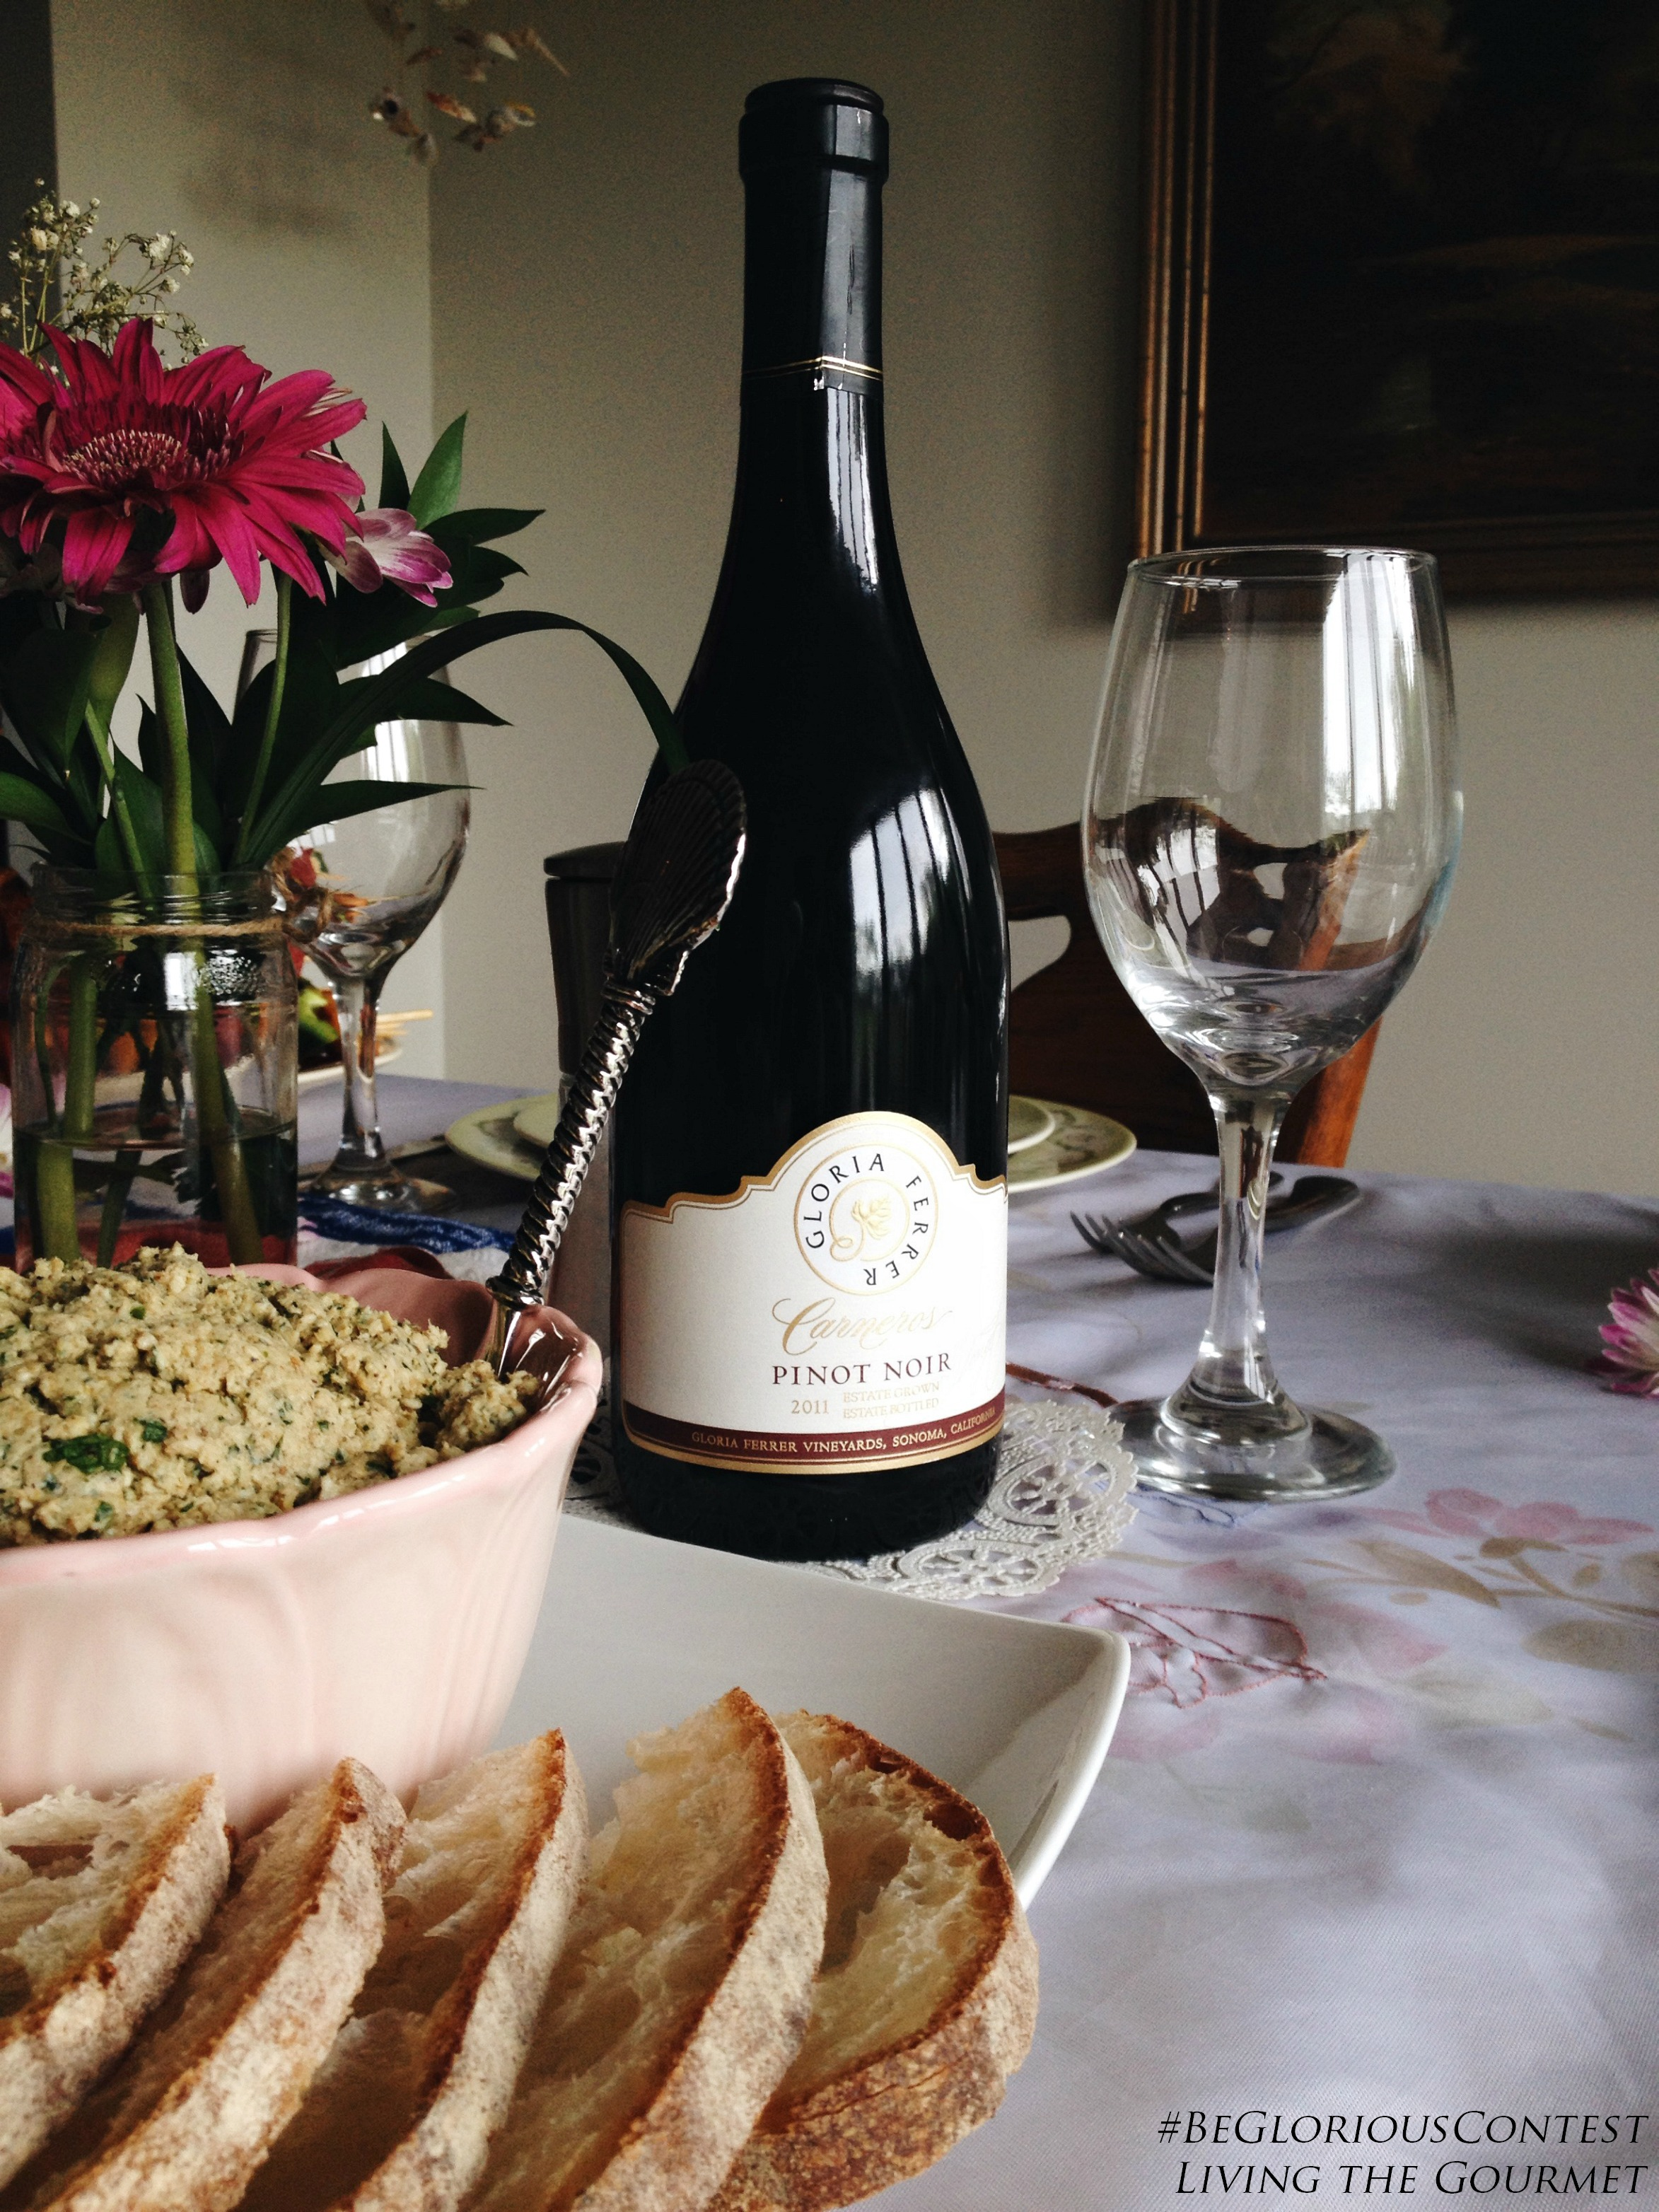 Living the Gourmet: A Fashionable Luncheon with Gloria Ferrer Wines |  #BeGloriousContest | #CleverGirls